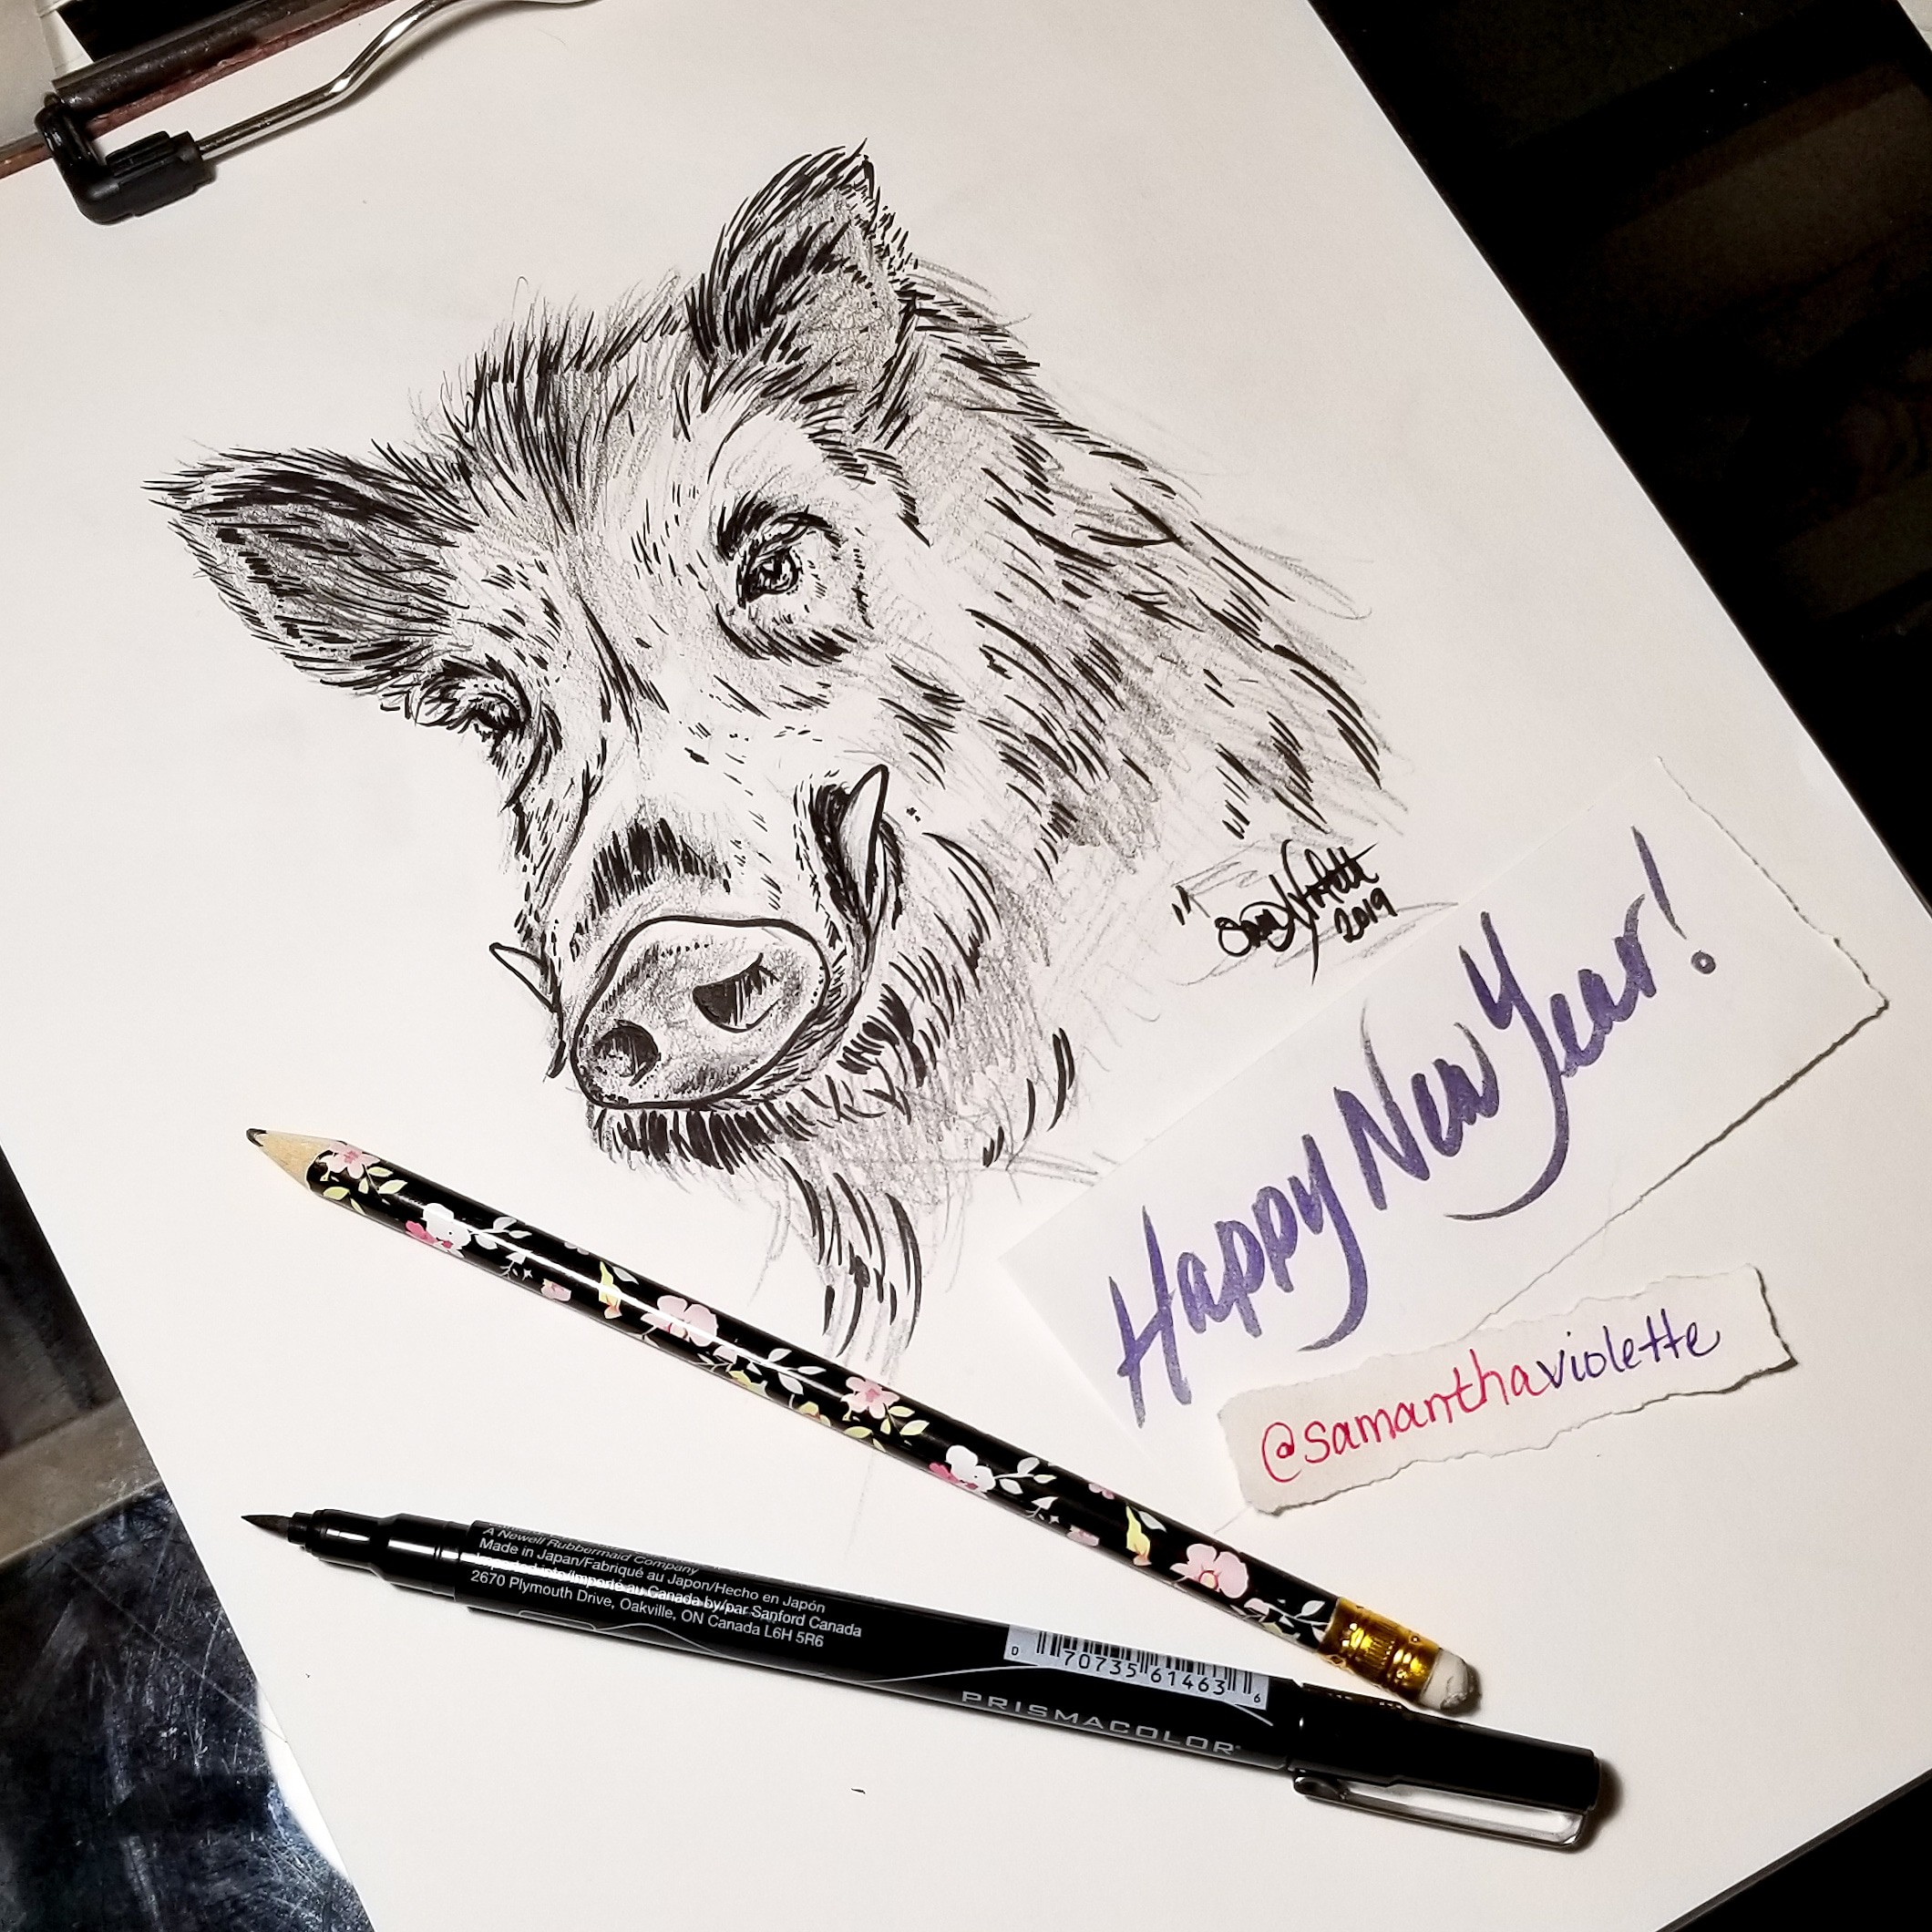 2019 - Year of the Boar: A sketched created with caffeine and stubborn moxie!